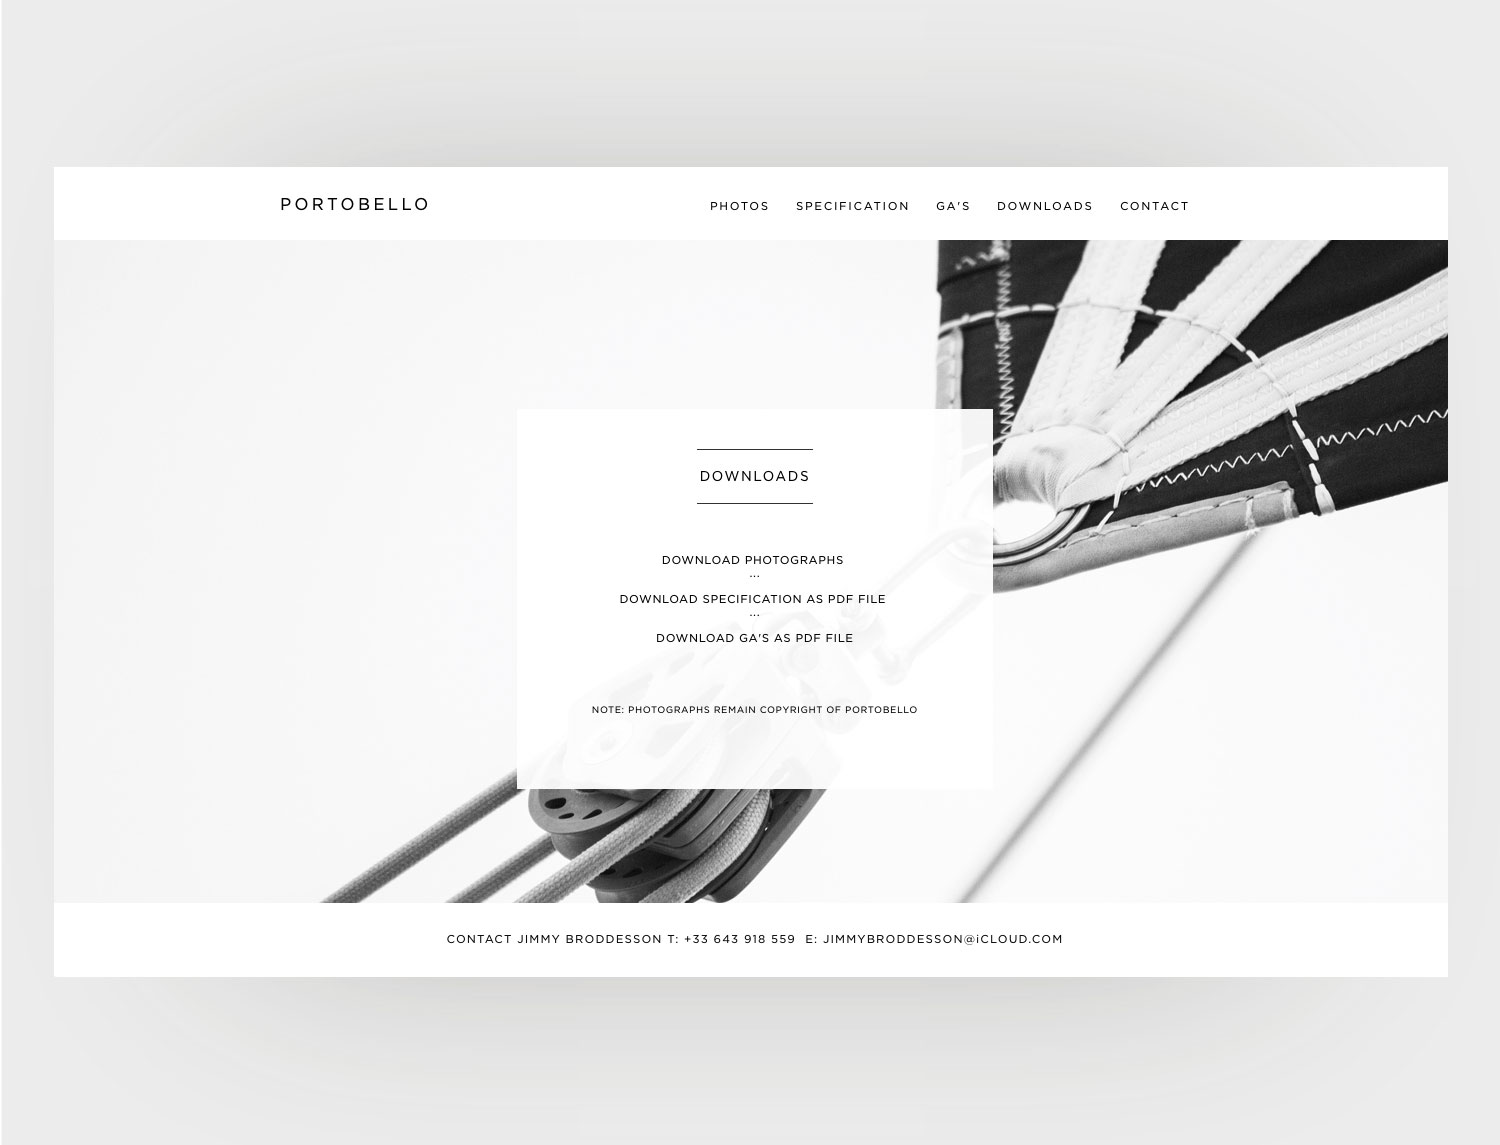 portobello-website-2.jpg